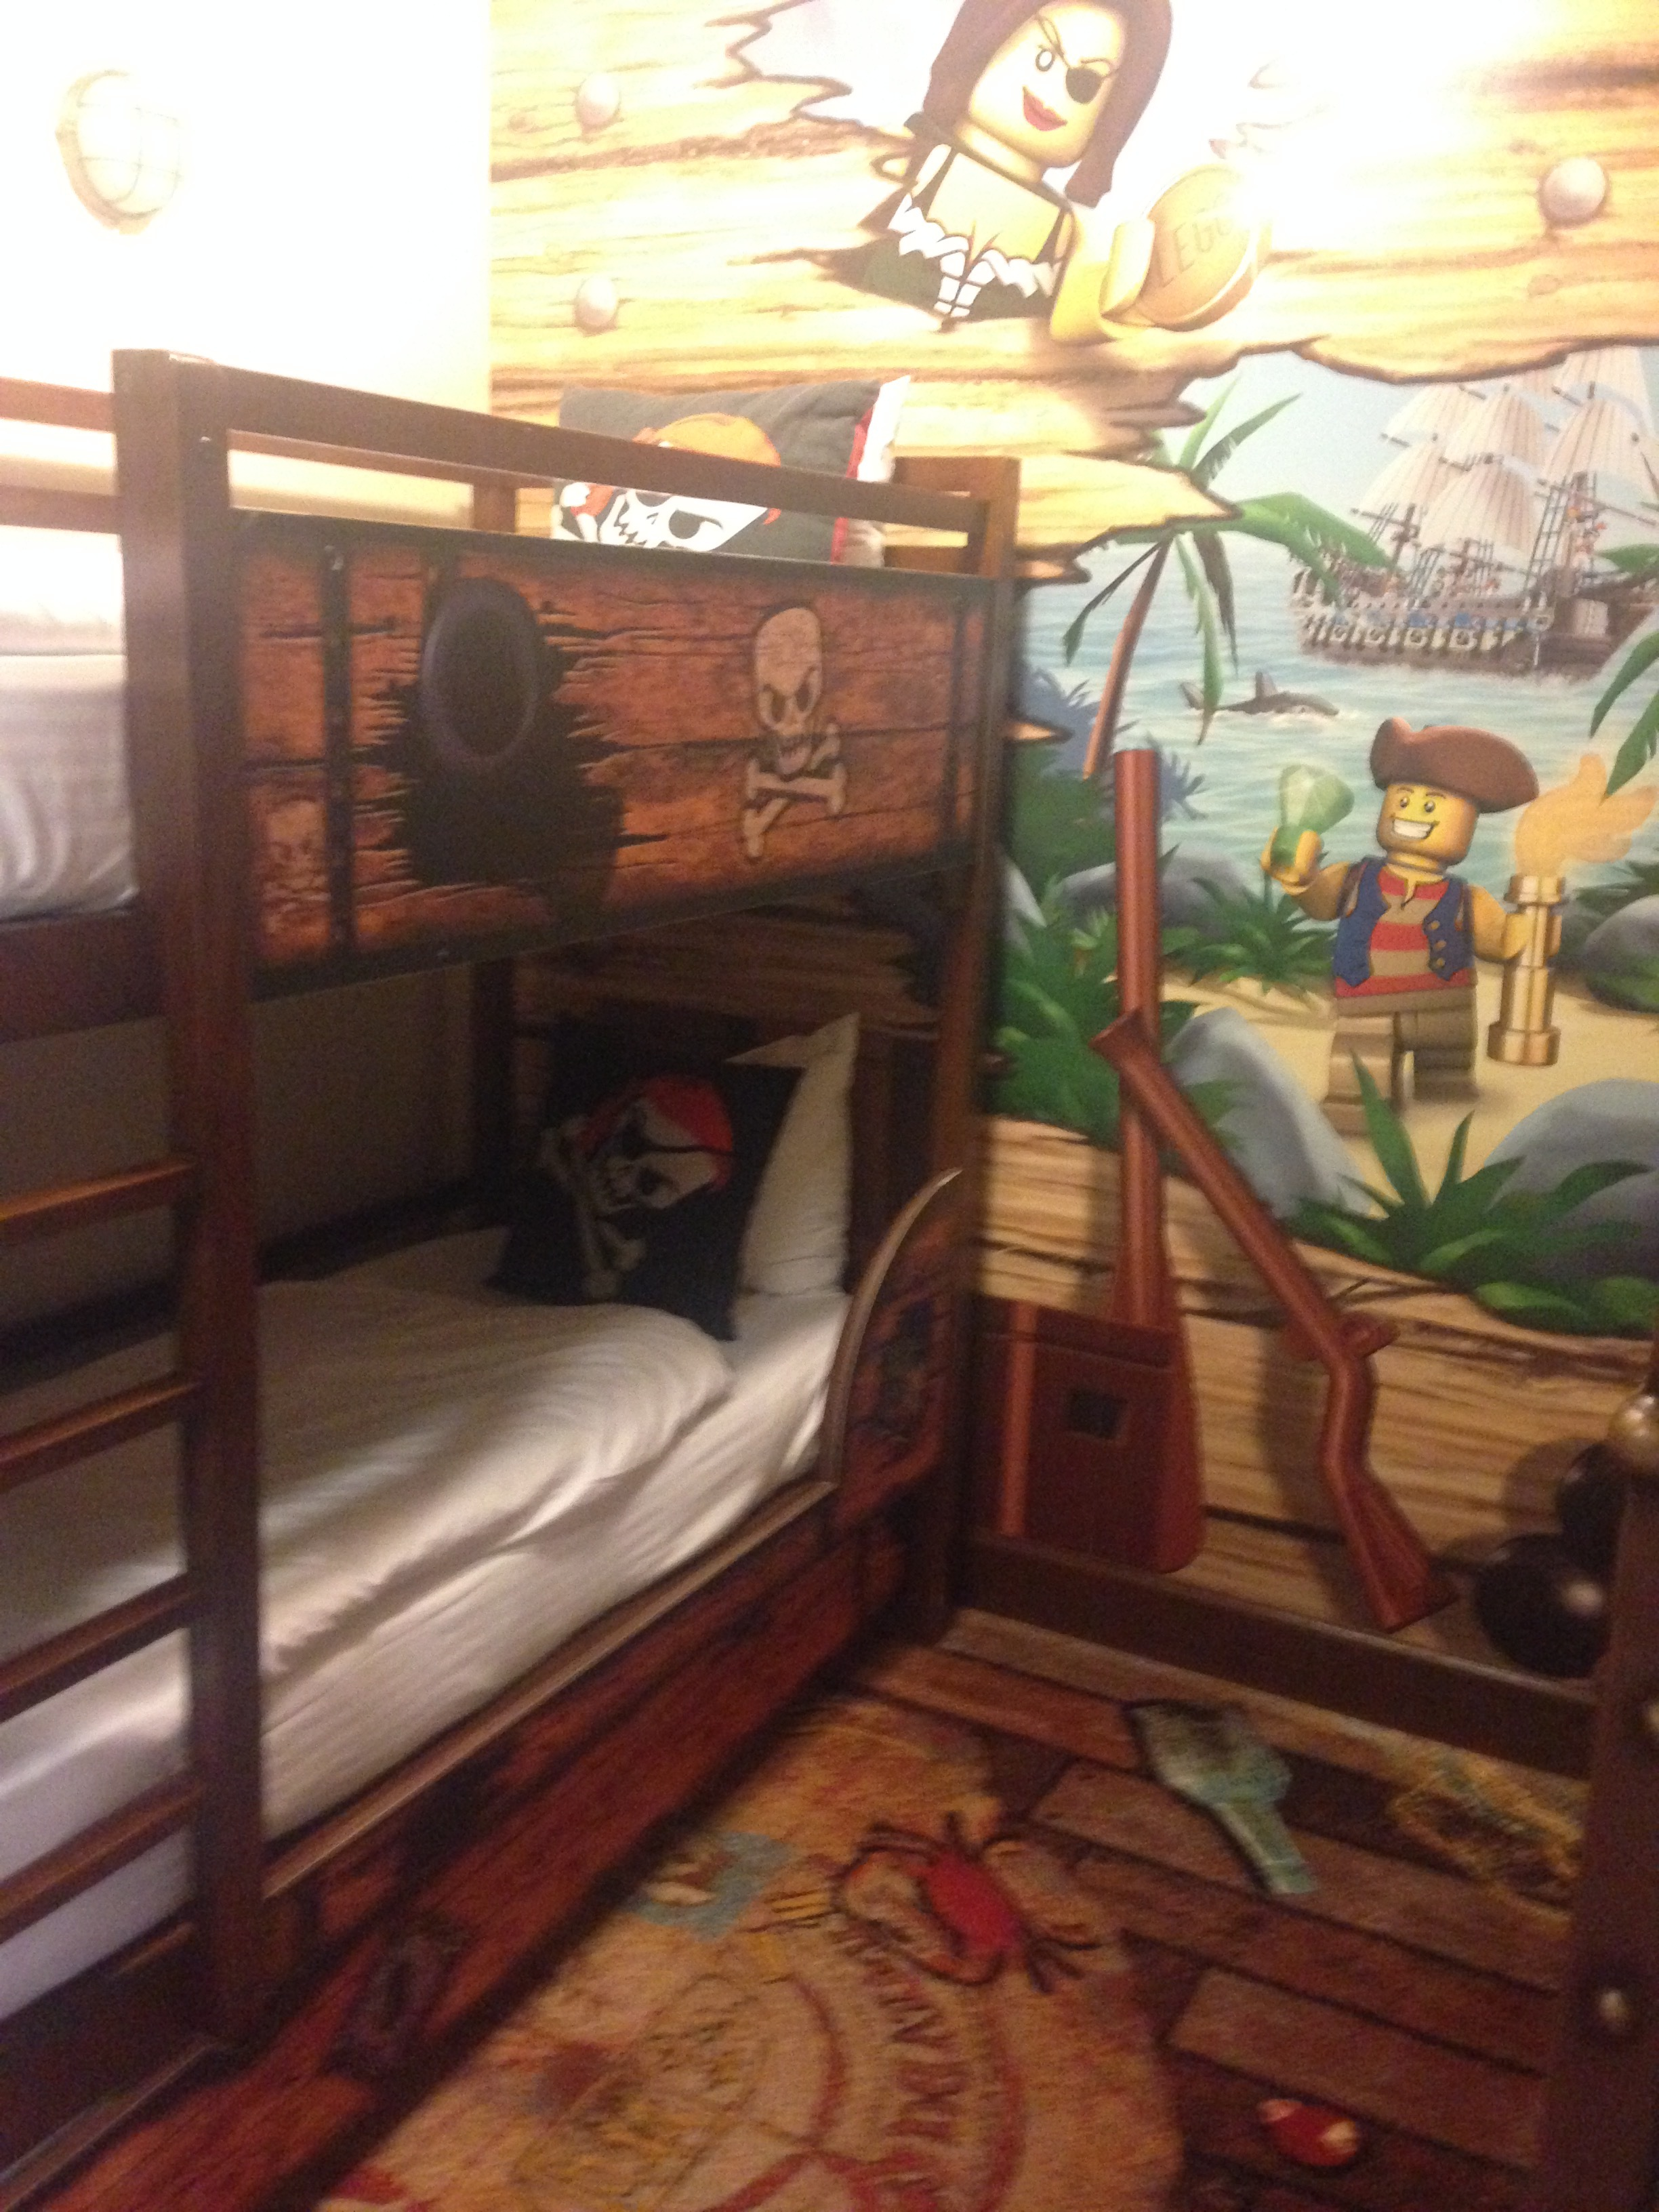 The kids area and bunk beds